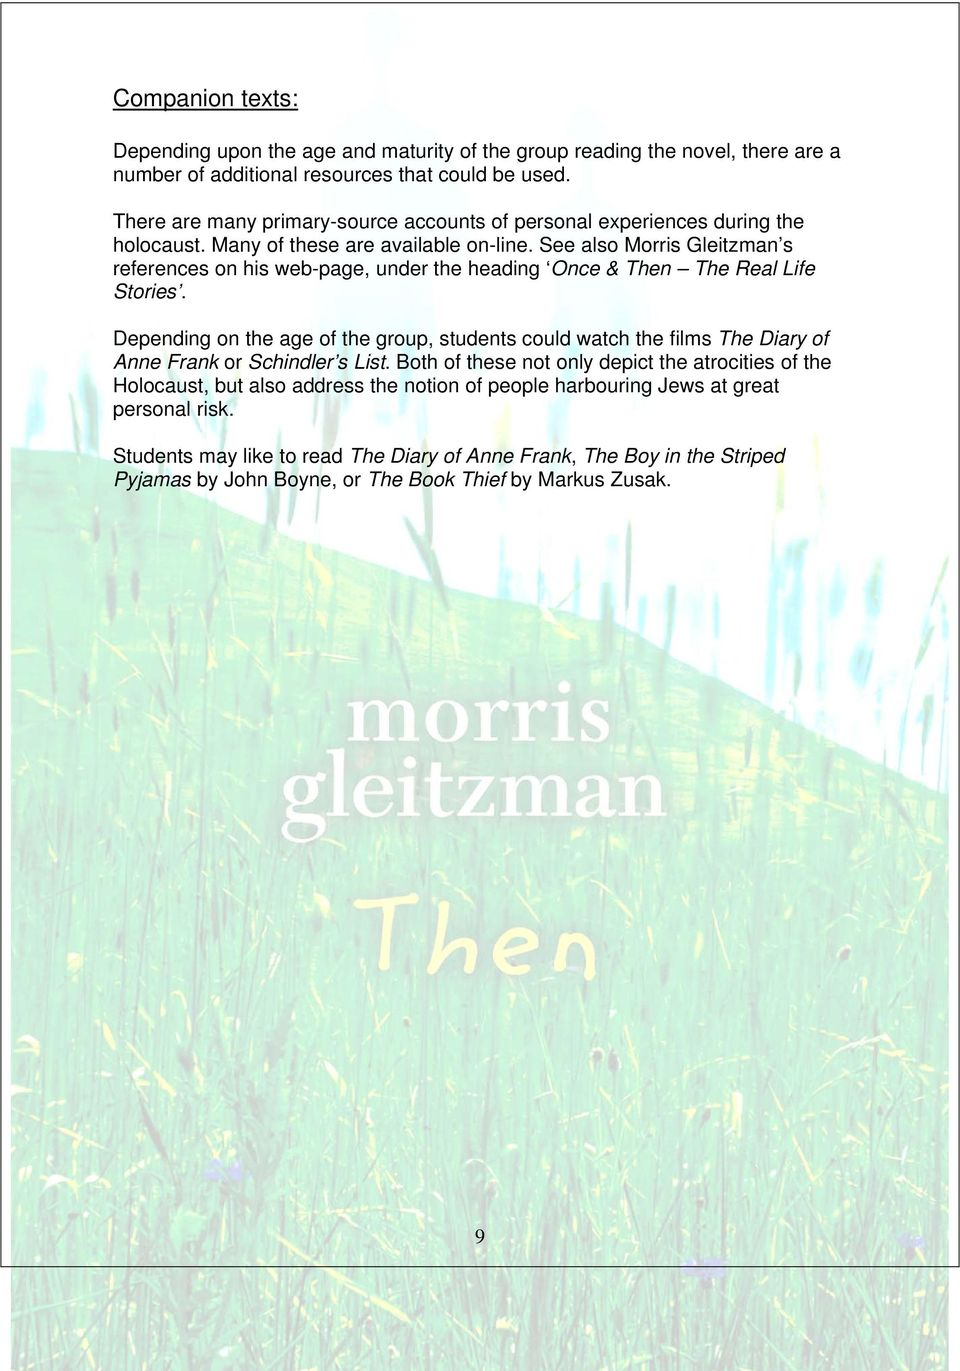 See also Morris Gleitzman s references on his web-page, under the heading Once & Then The Real Life Stories.